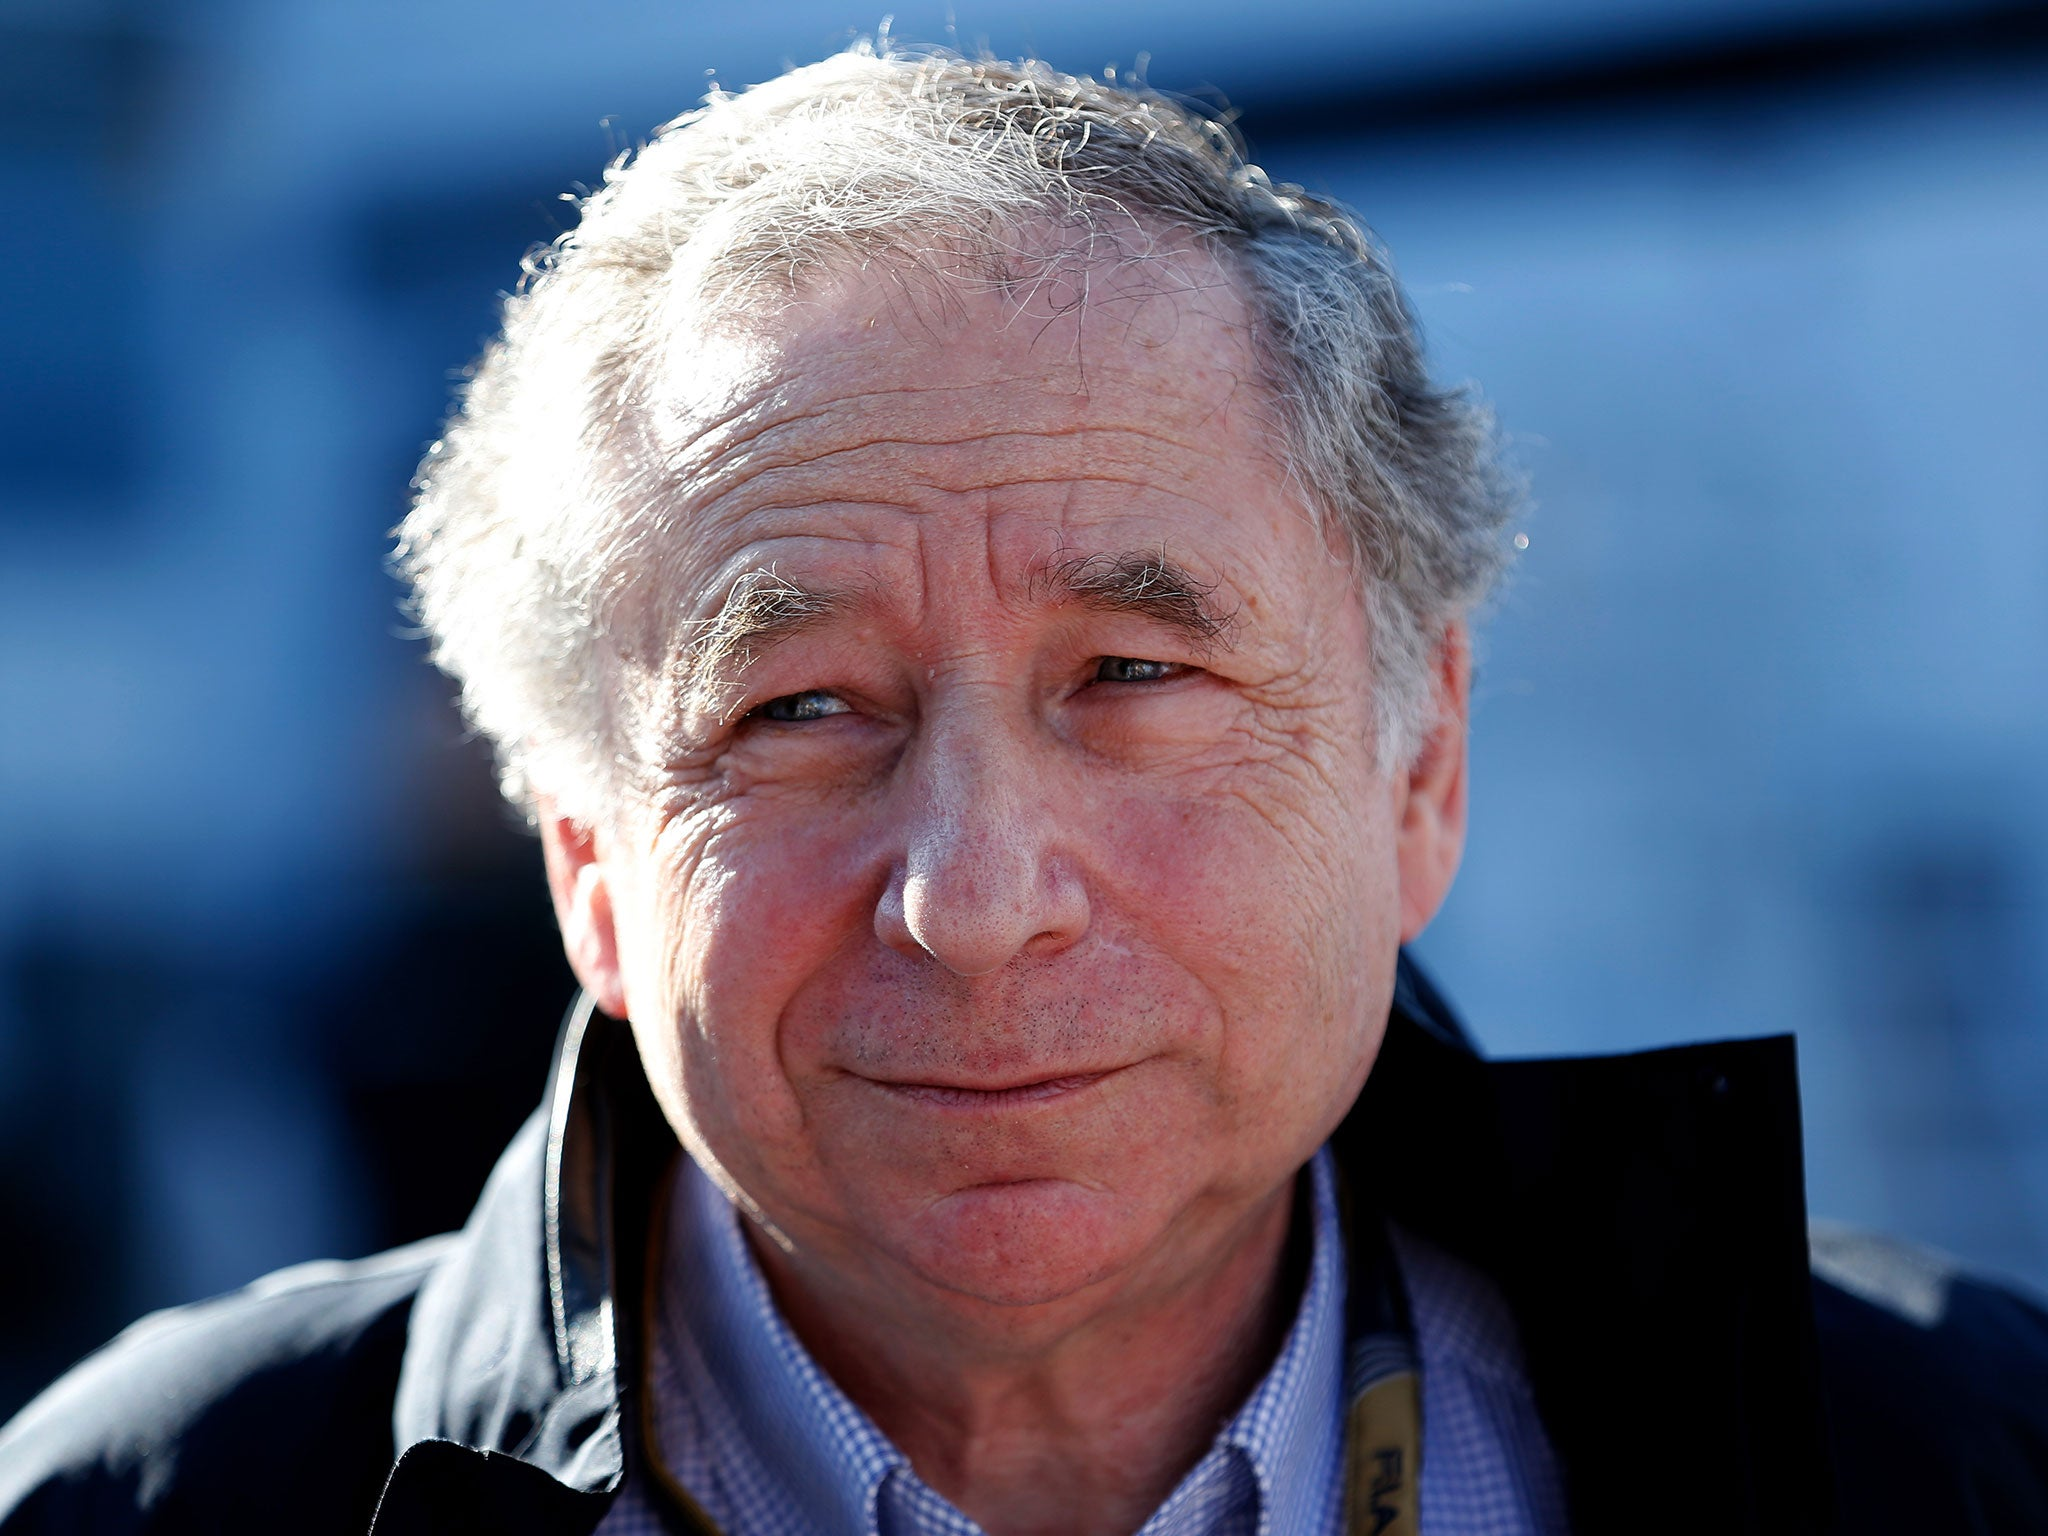 Paris attacks: FIA president Jean Todt compares terrorist ...